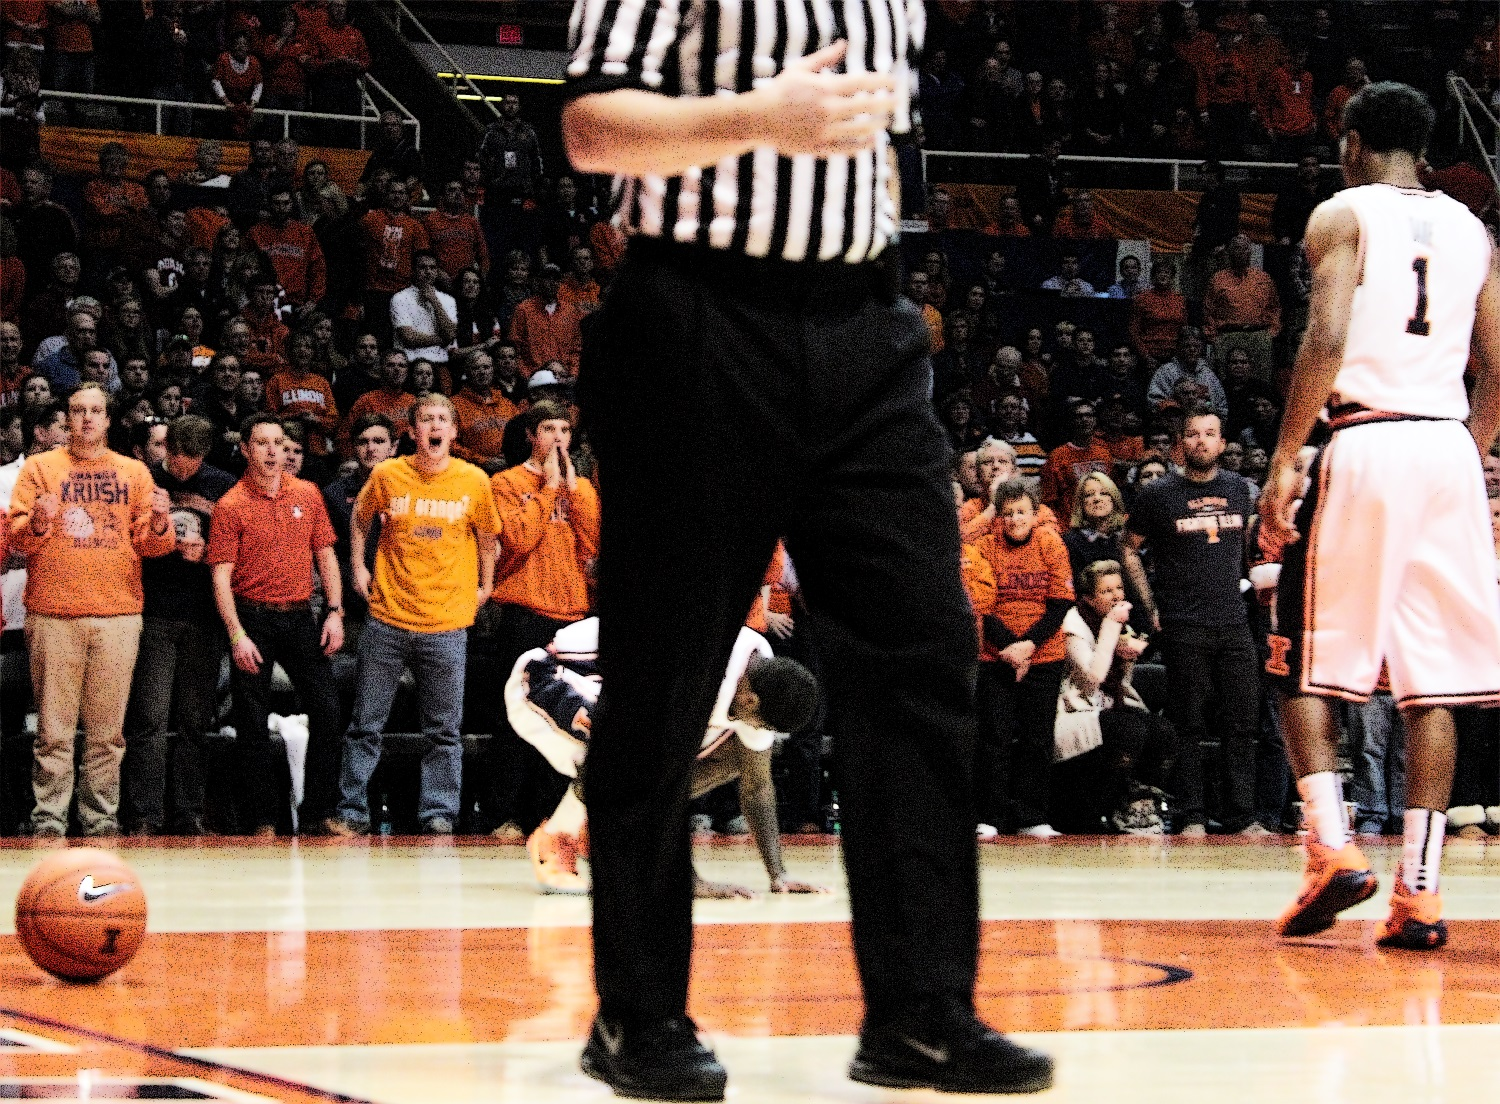 Aaron Cosby covers his face while referee walks away